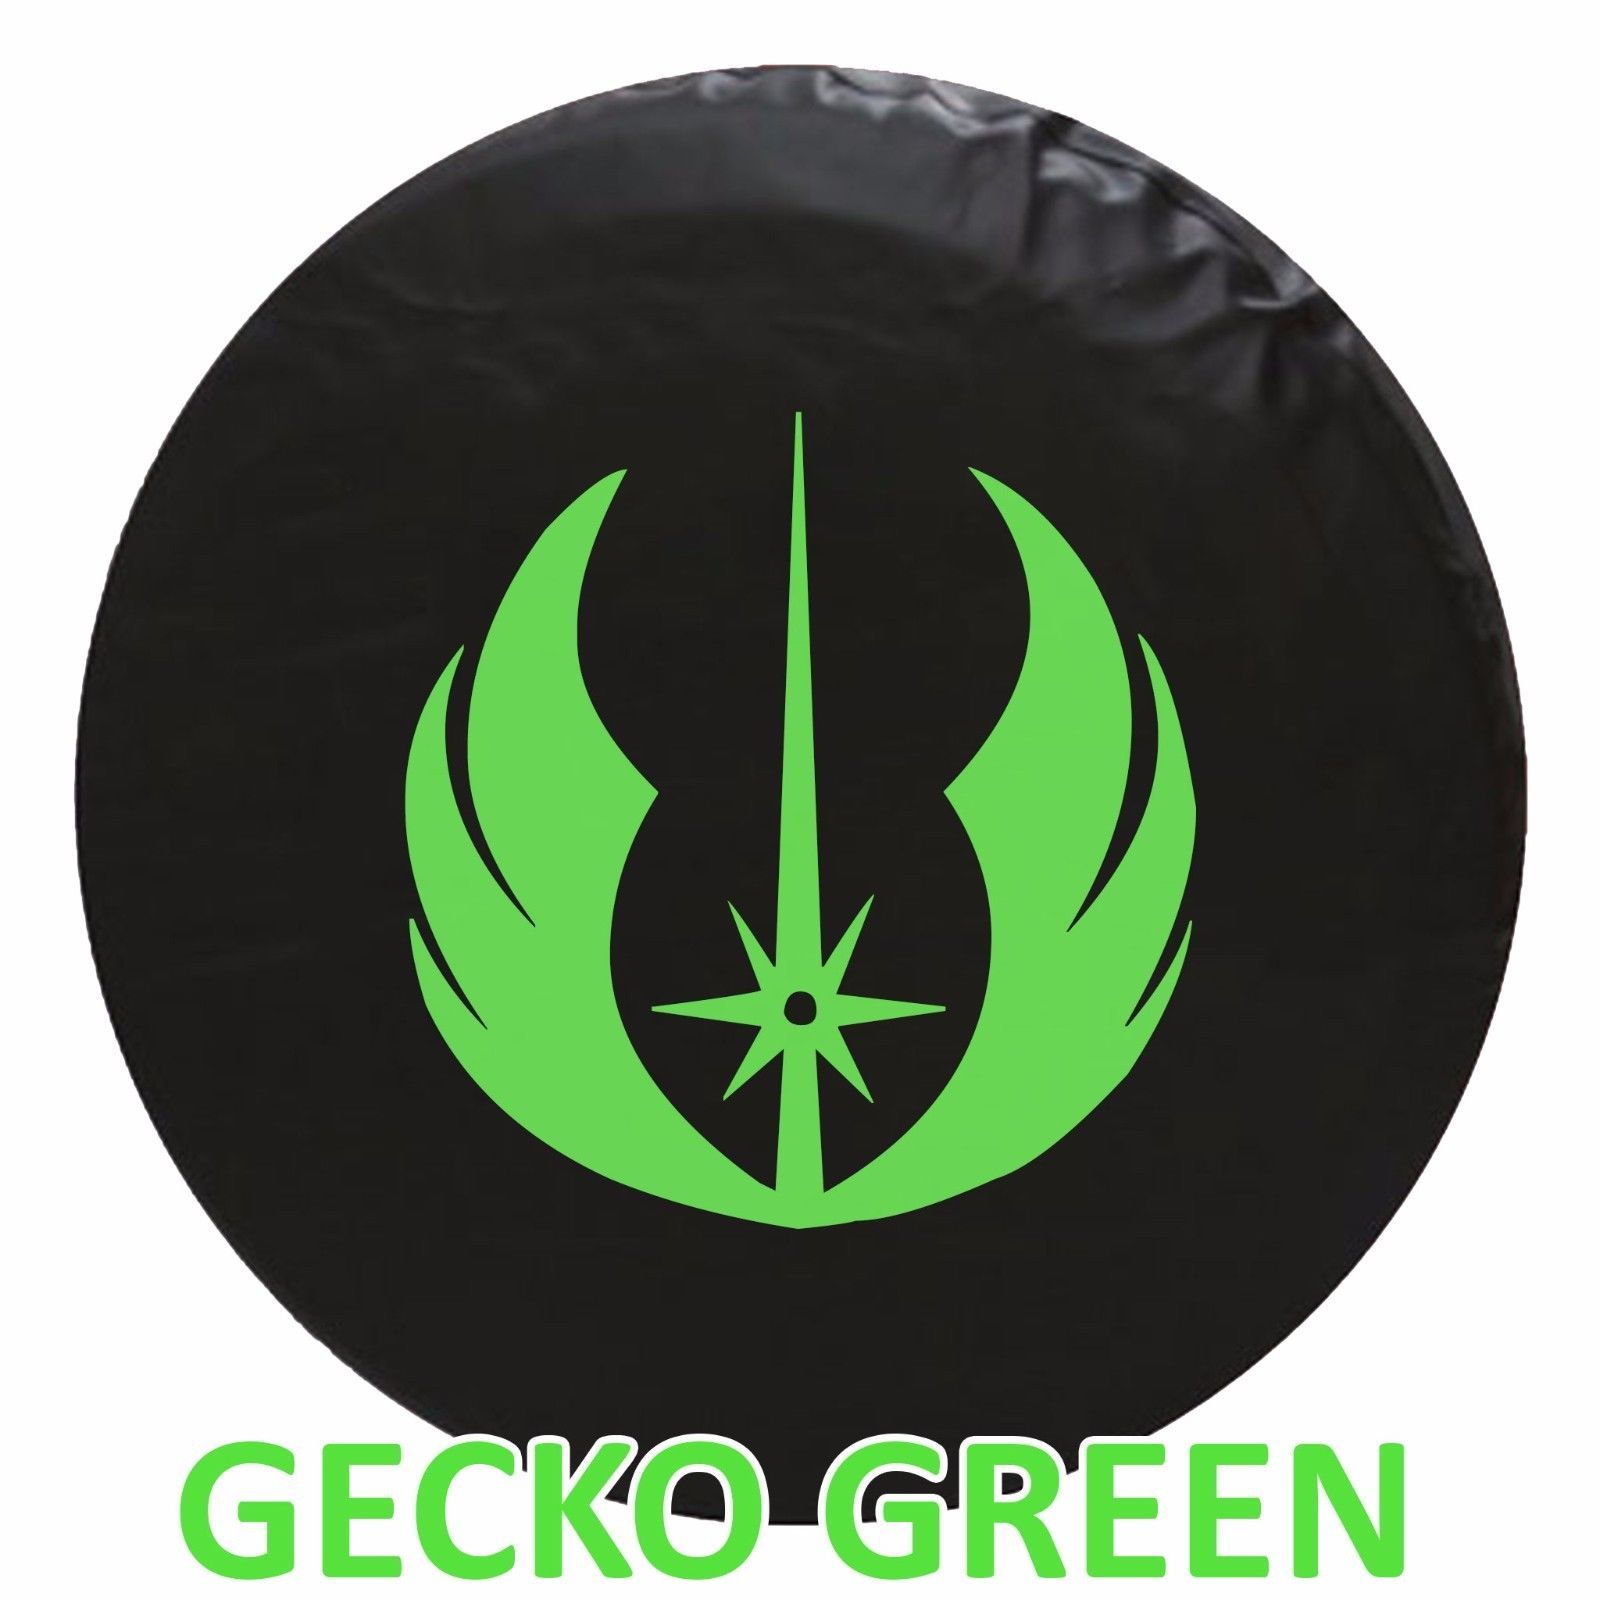 Star Wars Jedi Order Tire Cover - STANDARD - We Need Tire Size and Color Choice